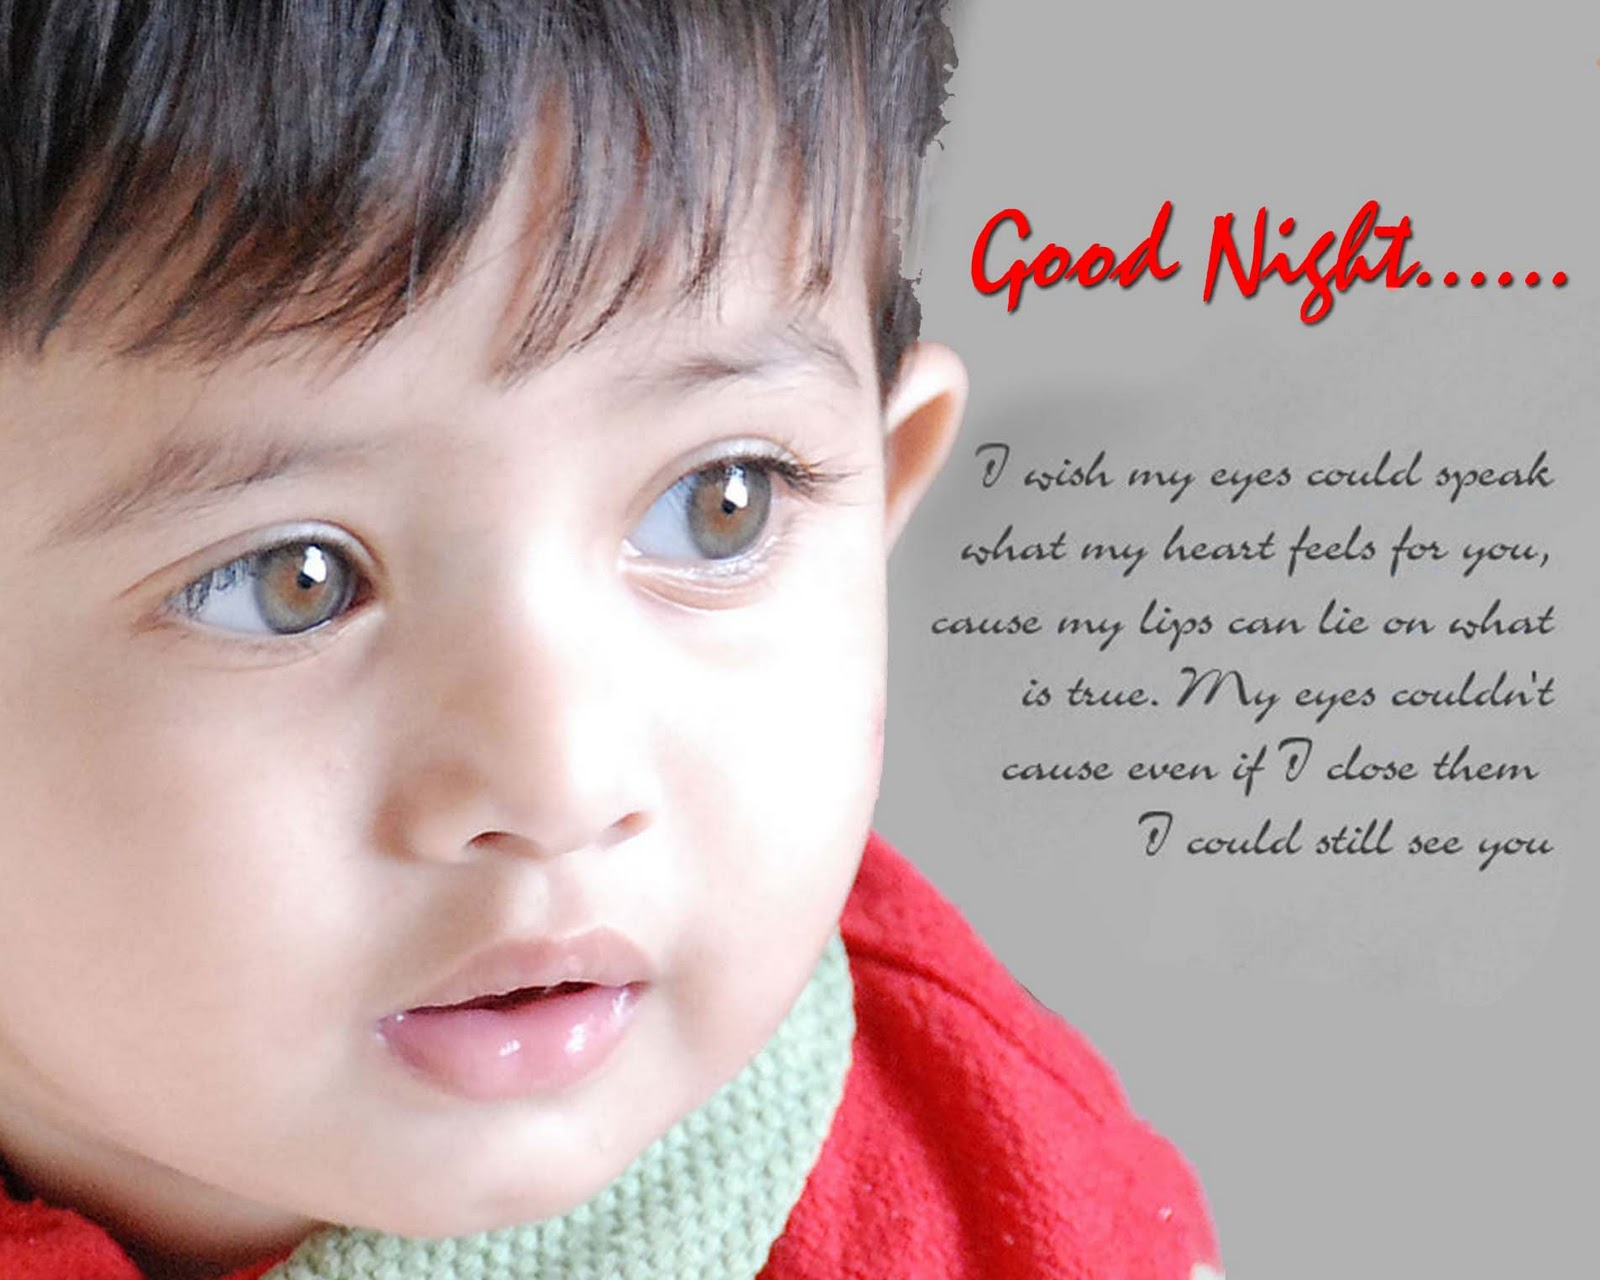 Good night greetings quotes wishes hd wallpapers free download good night greetings quotes wishes hd wallpapers free download m4hsunfo